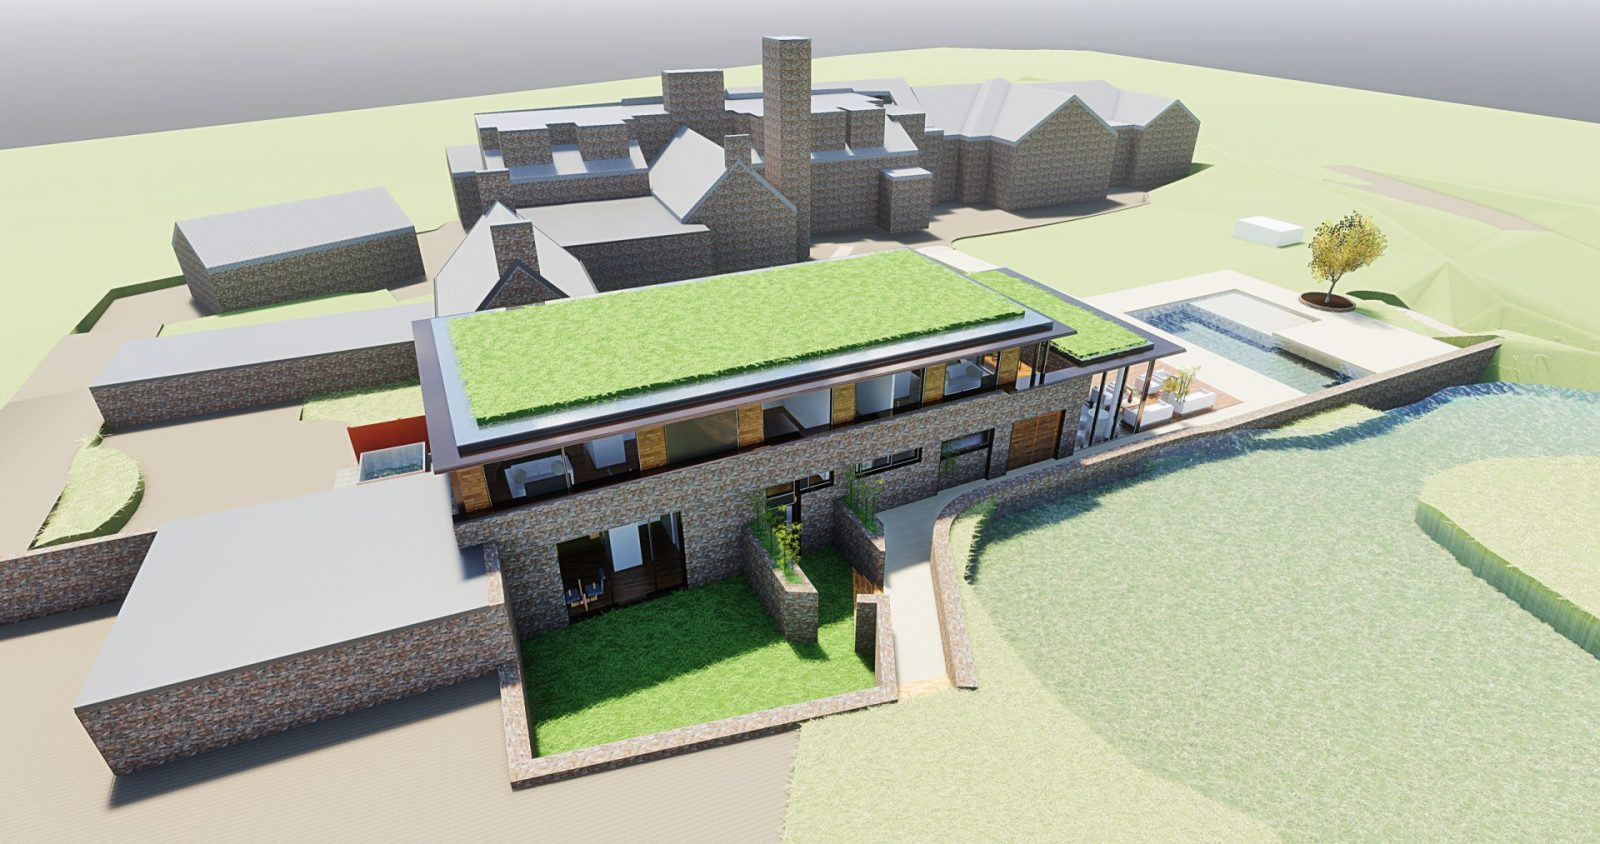 jersey hotel annex extension hospitality architecture jersey architects12